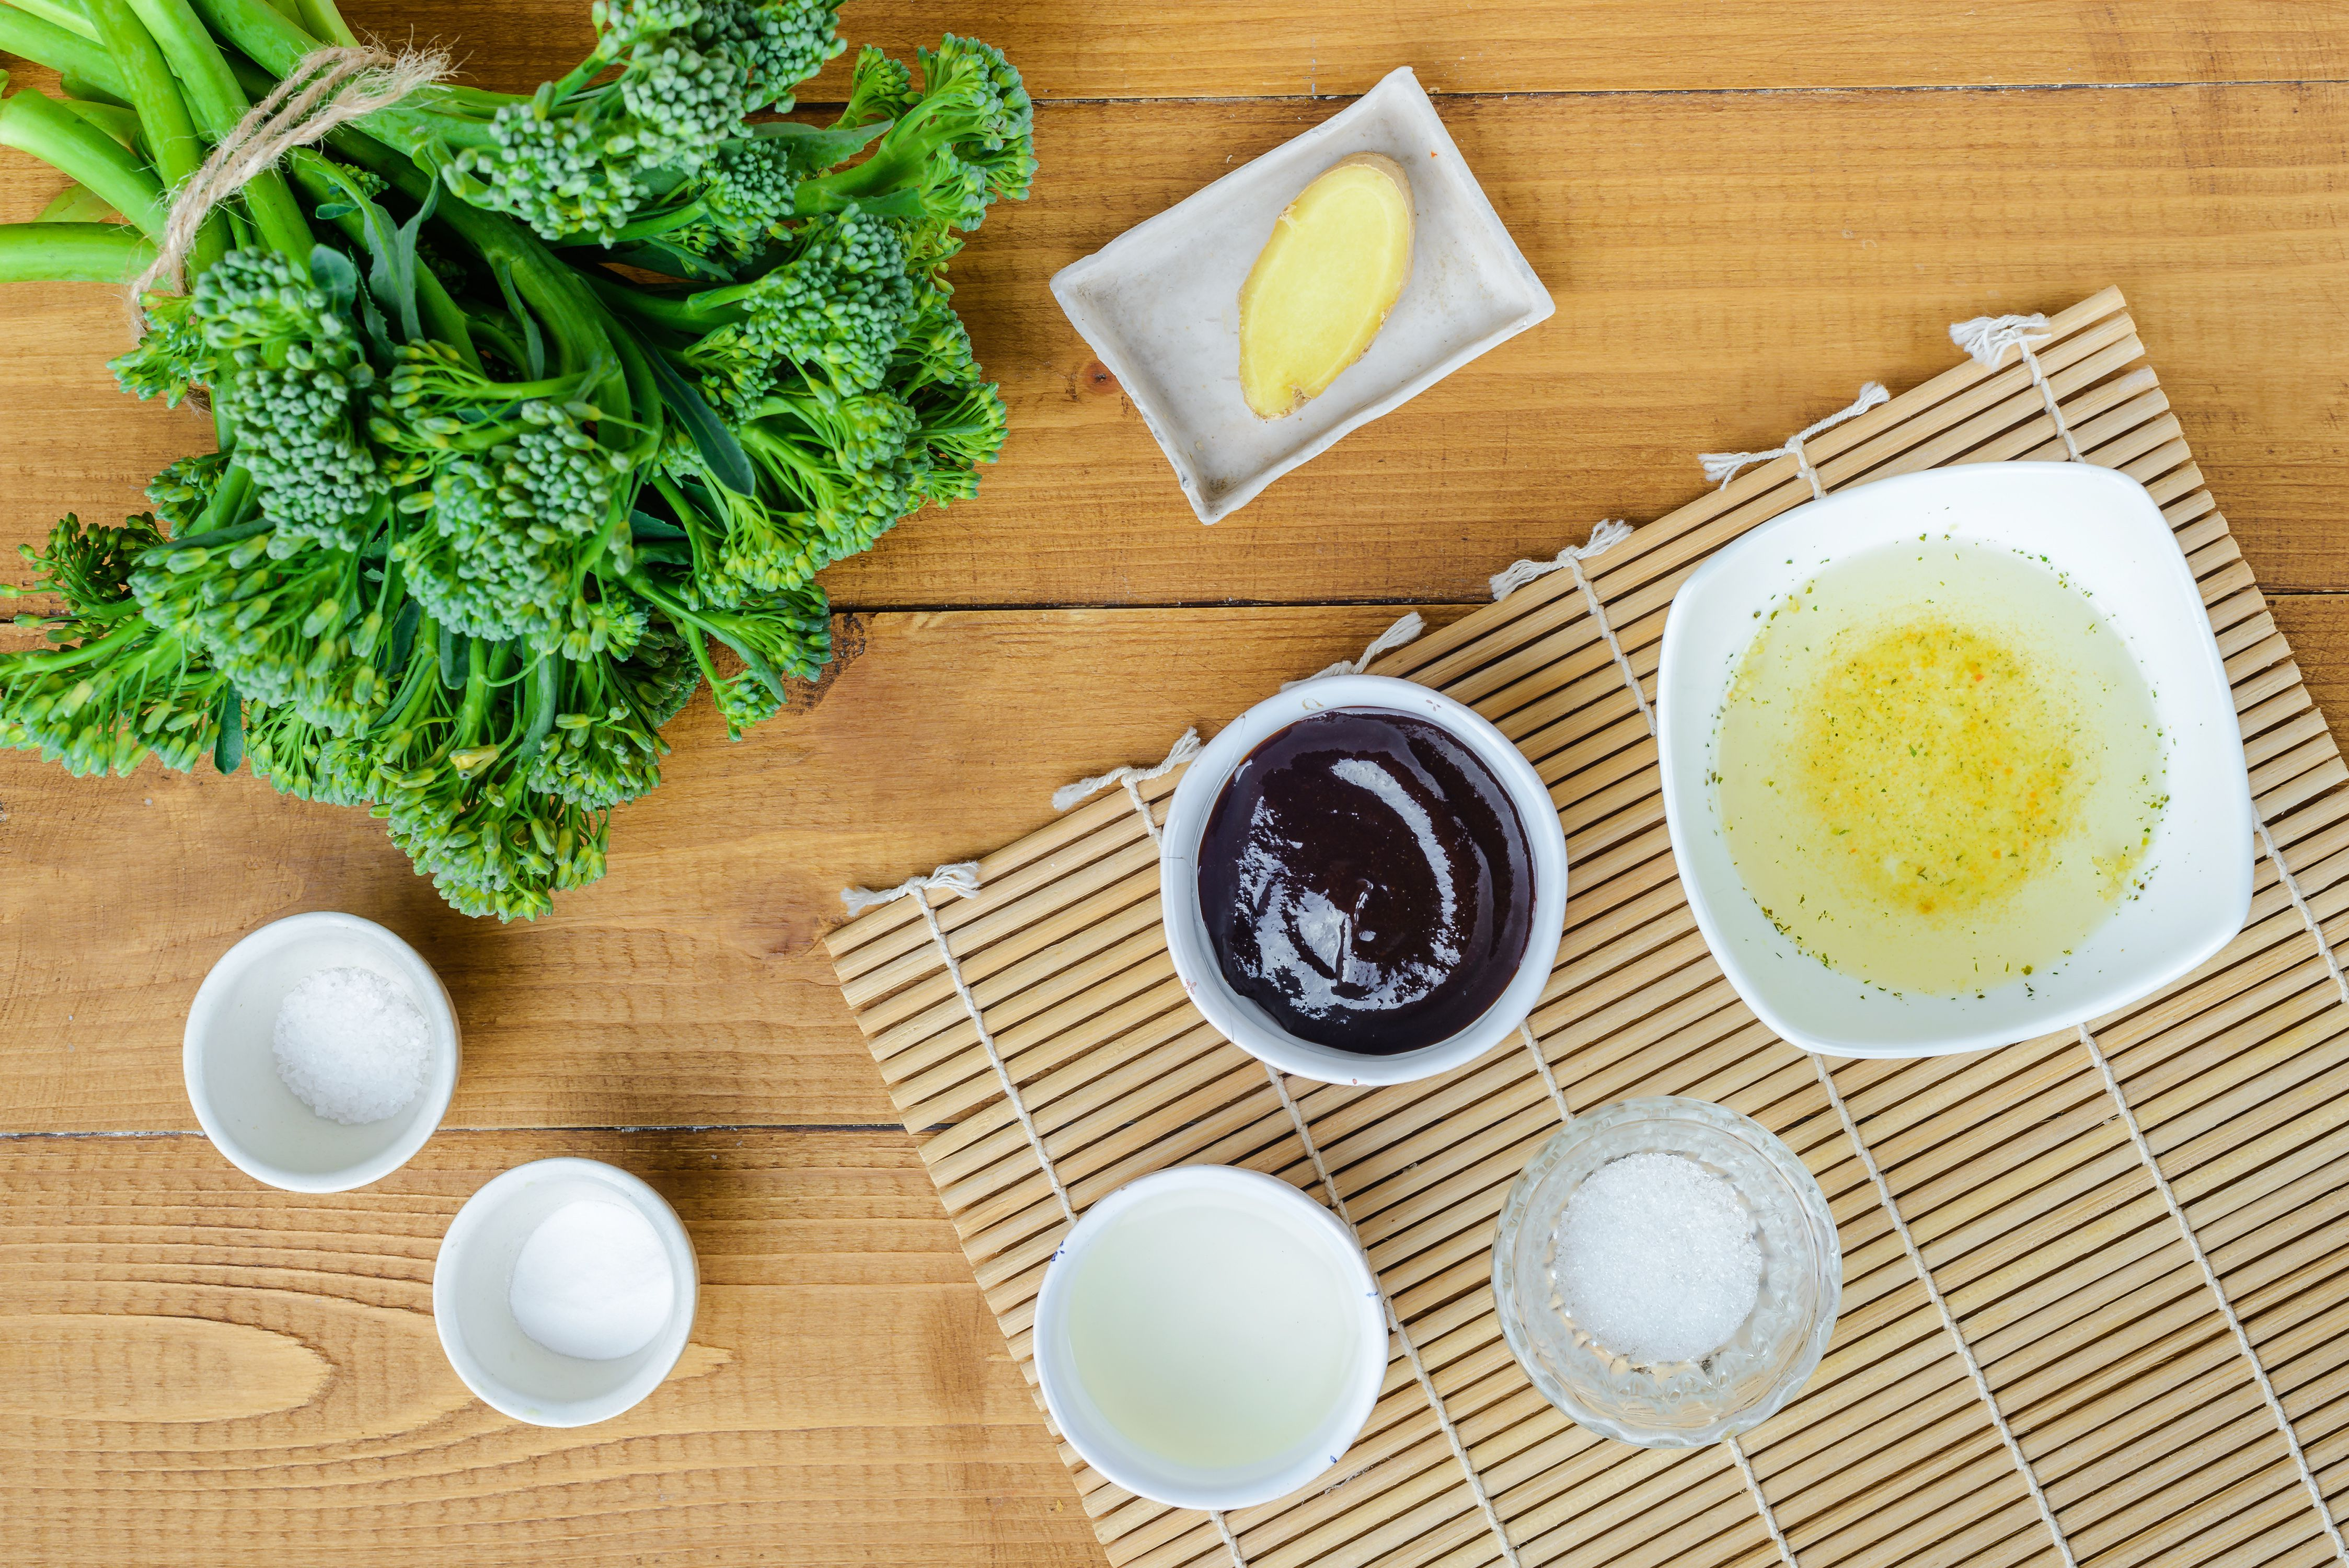 Chinese Broccoli With Oyster Sauce Recipe ingredients